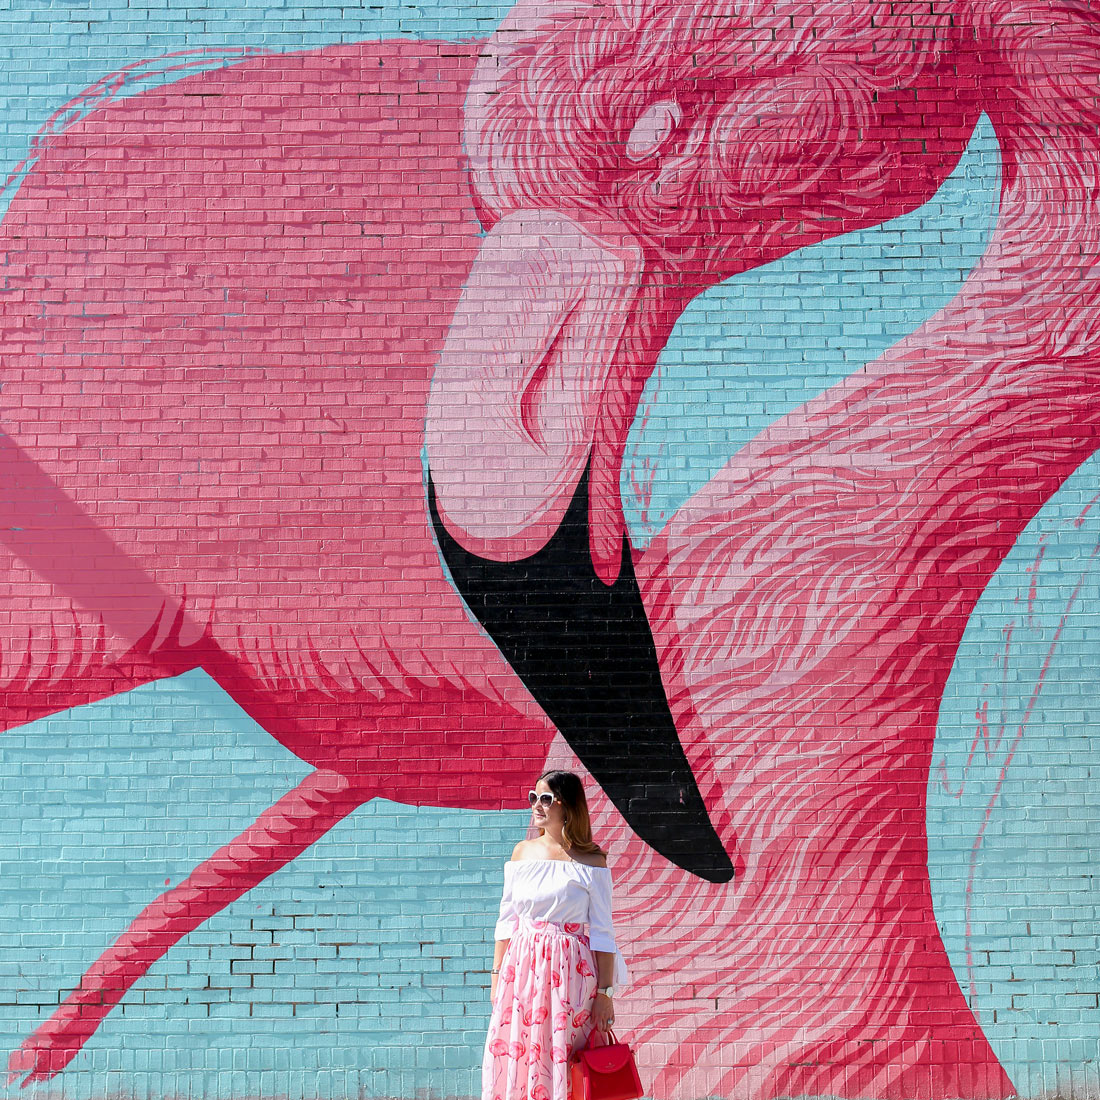 Flamingo Mural Chicago Ohio Street